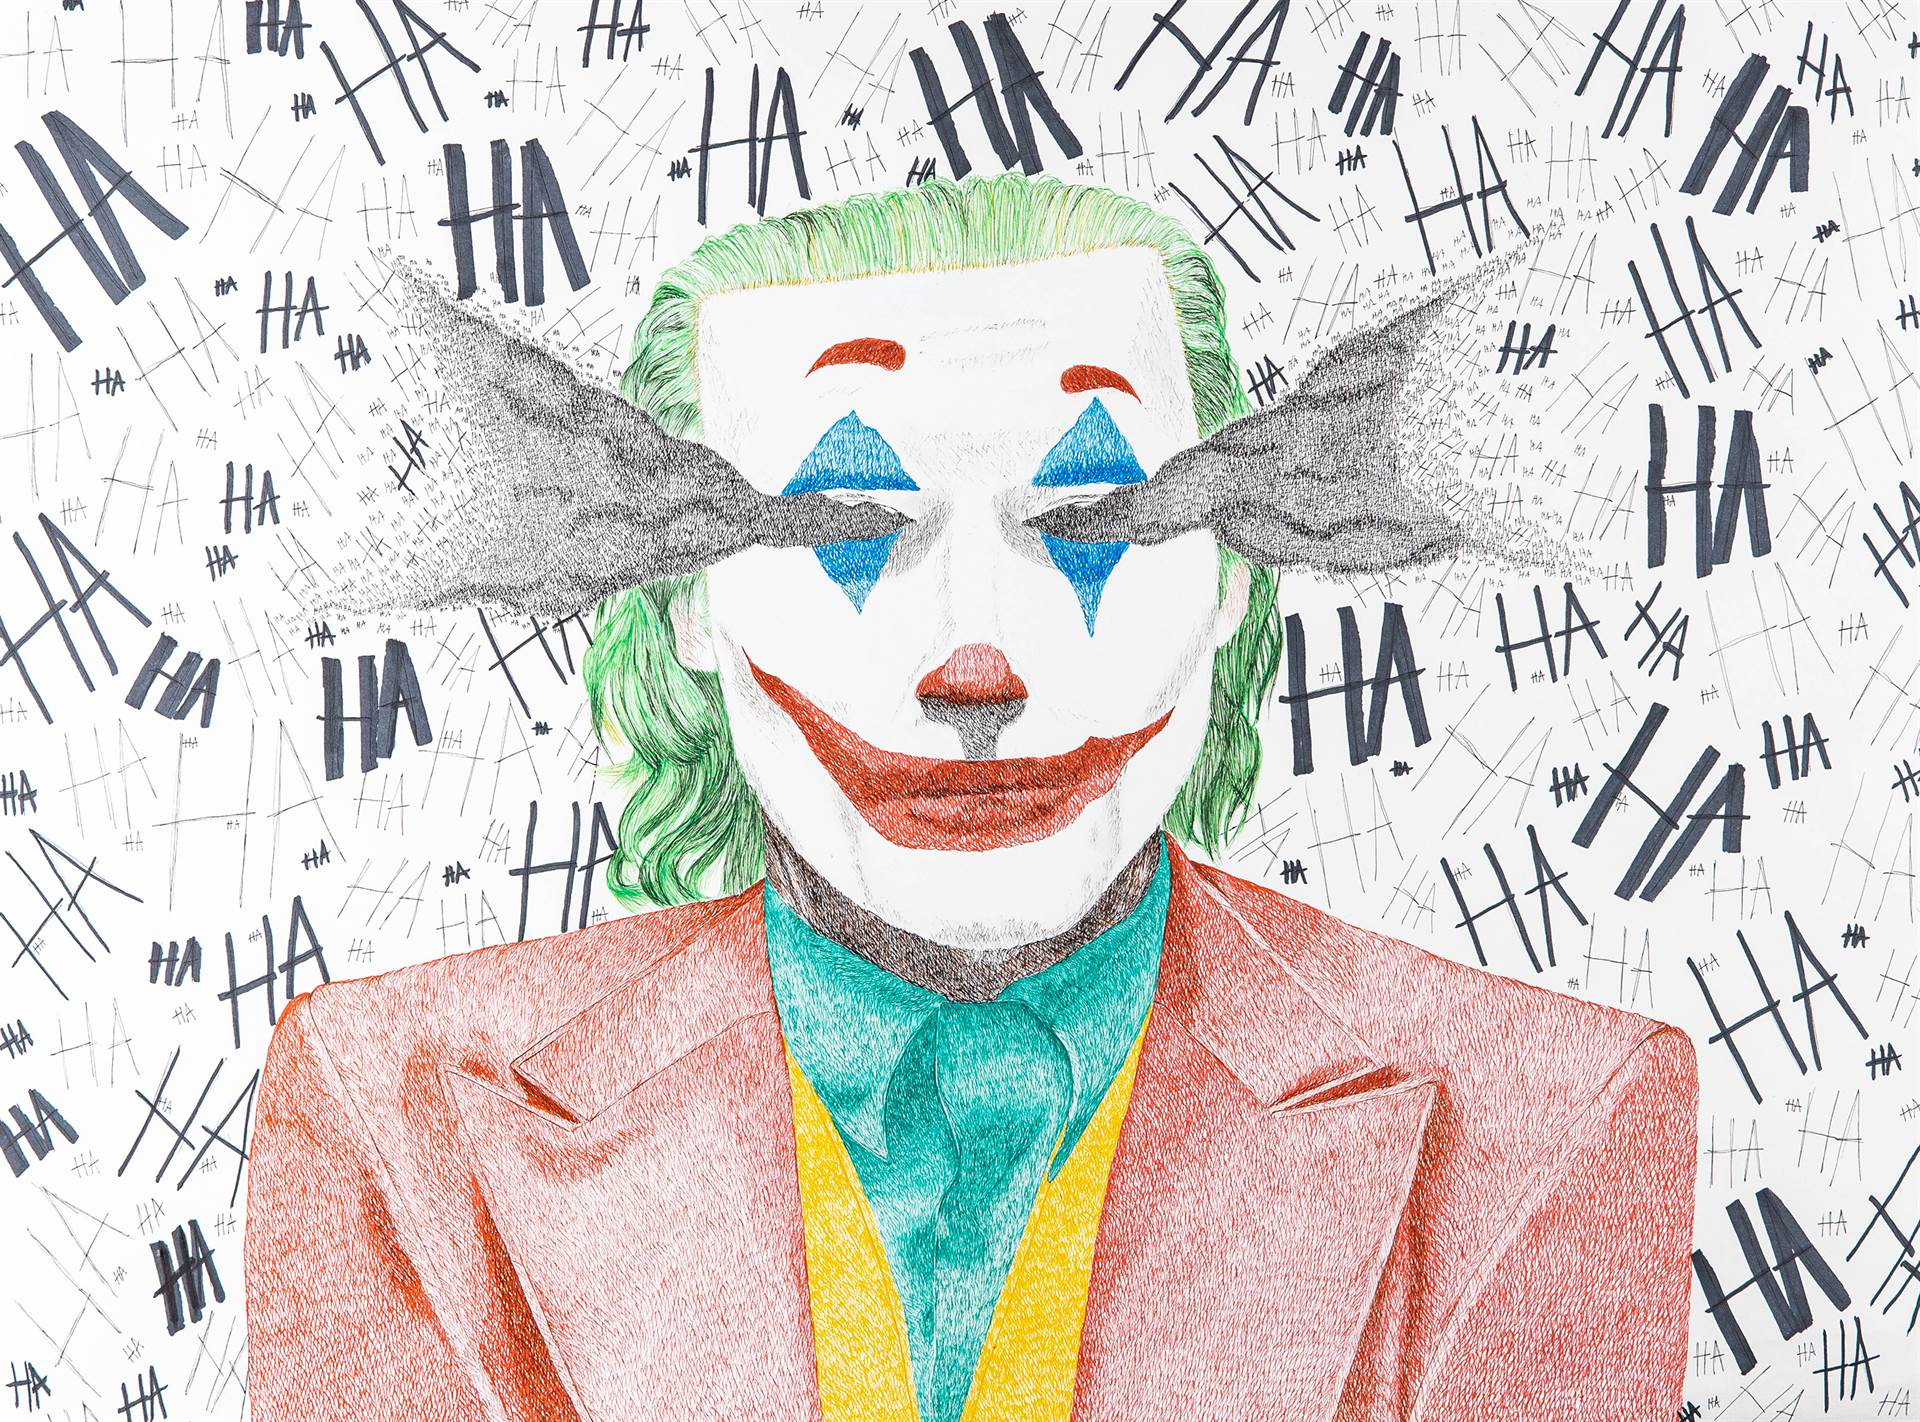 Drawing of the Joker with HA HA